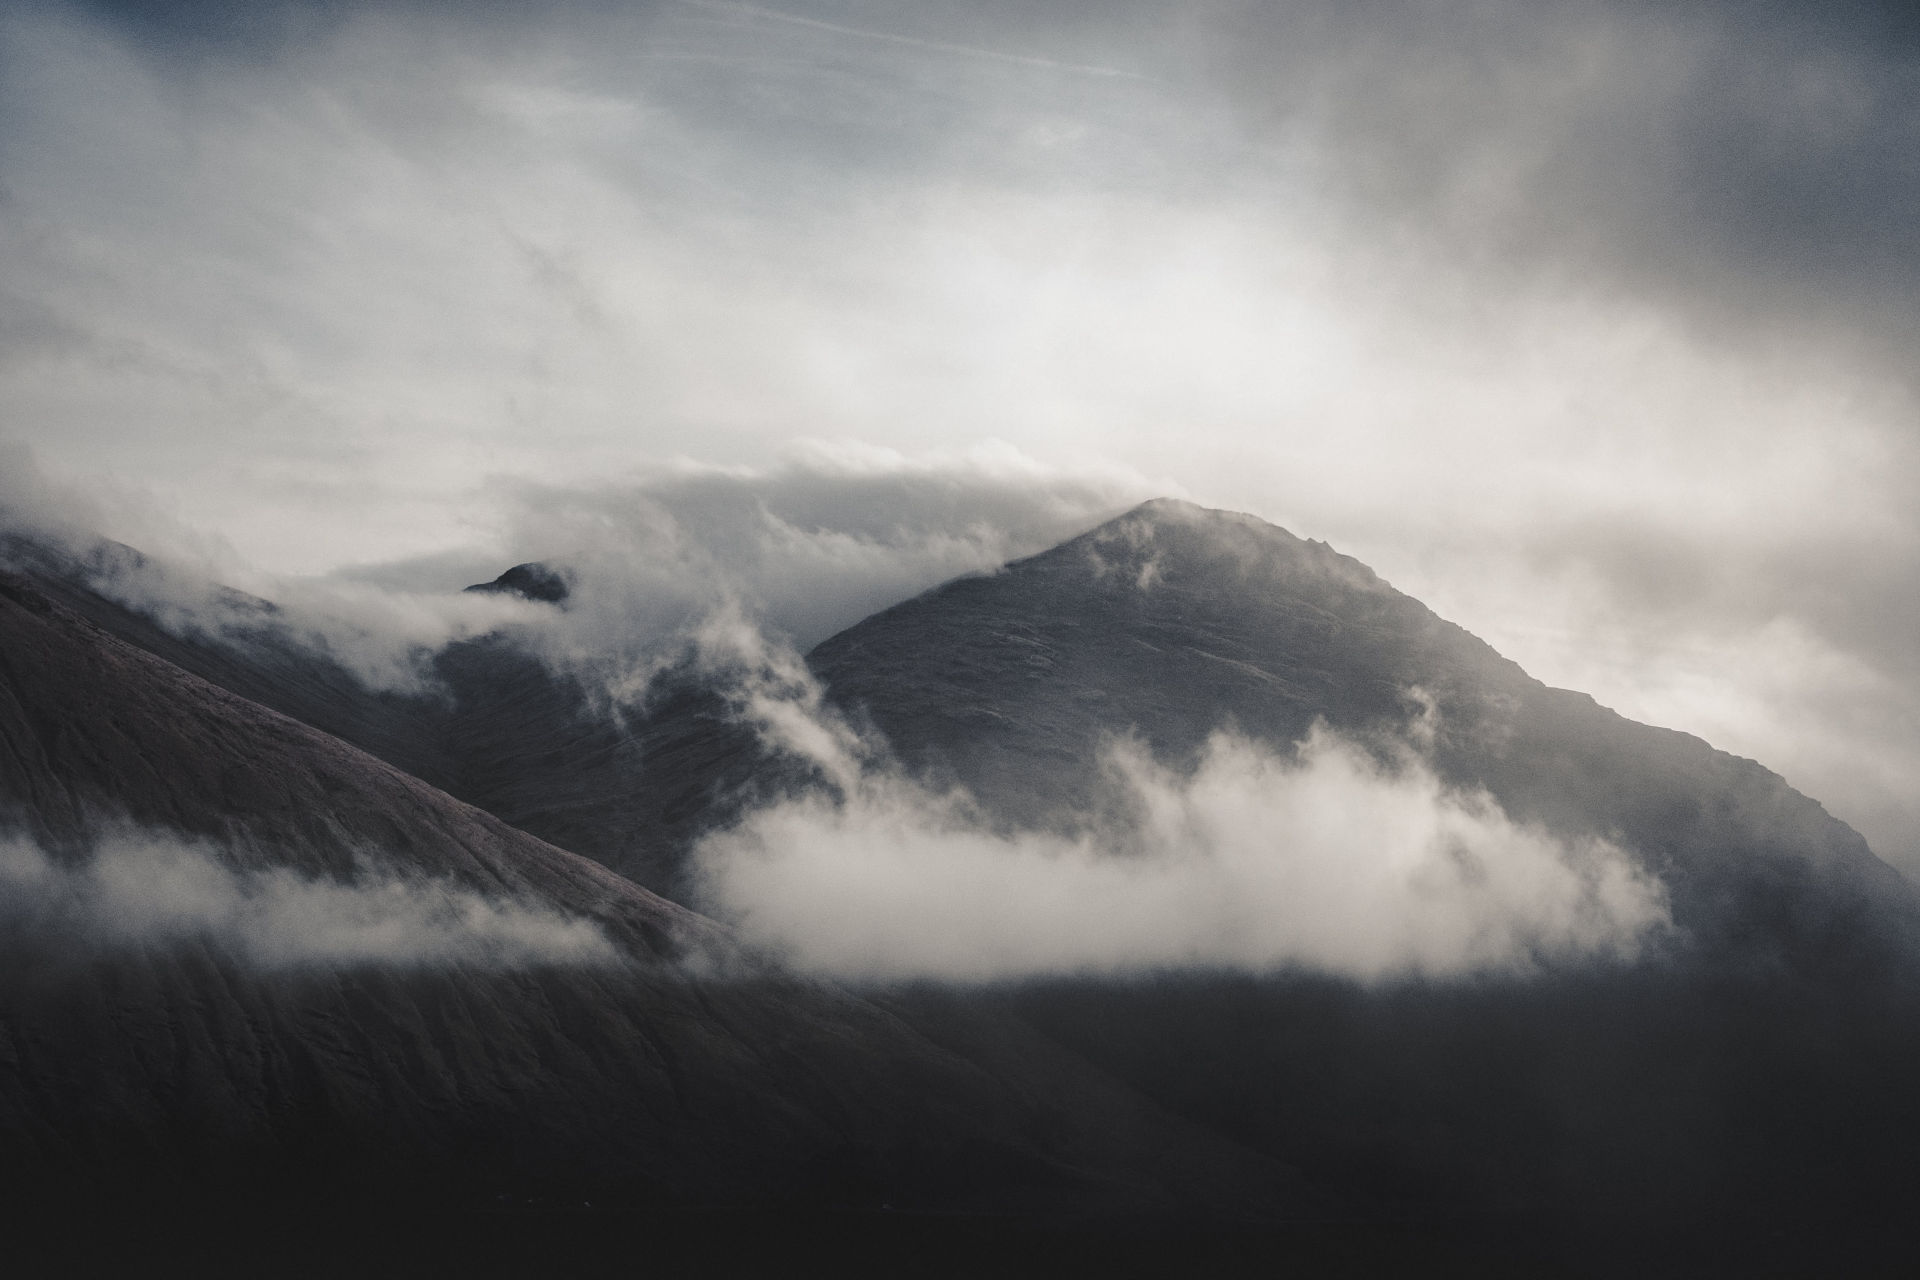 Clouds around The Cobbler